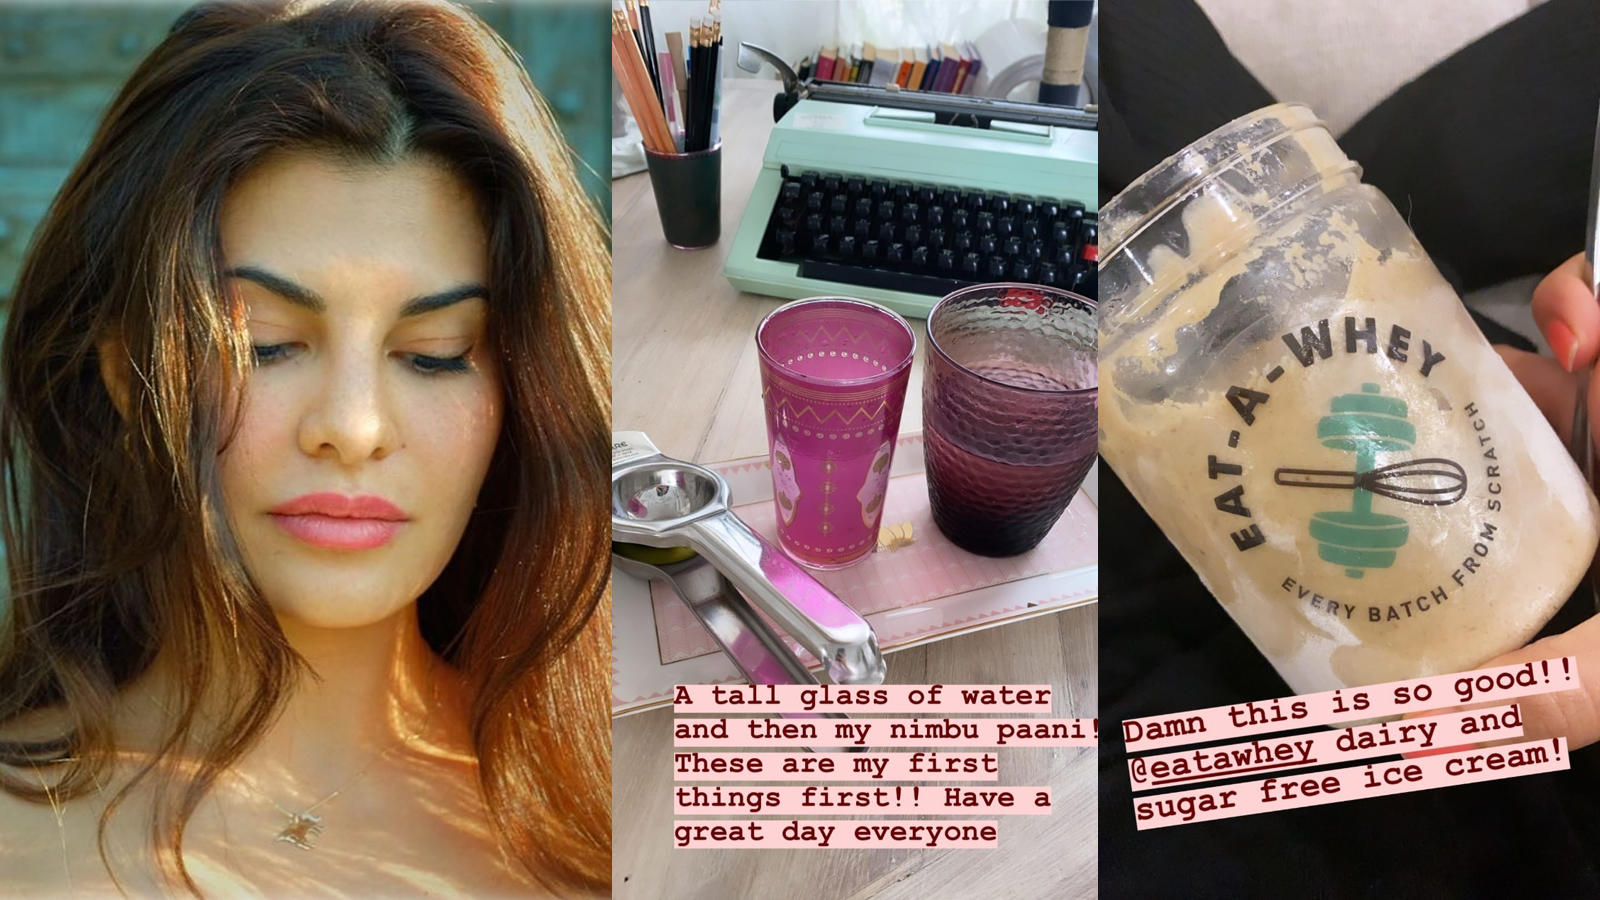 jacqueline-fernandez-keeps-boredom-at-bay-for-fans-amid-covid-19-pandemic-gives-sneak-peek-into-her-morning-routine